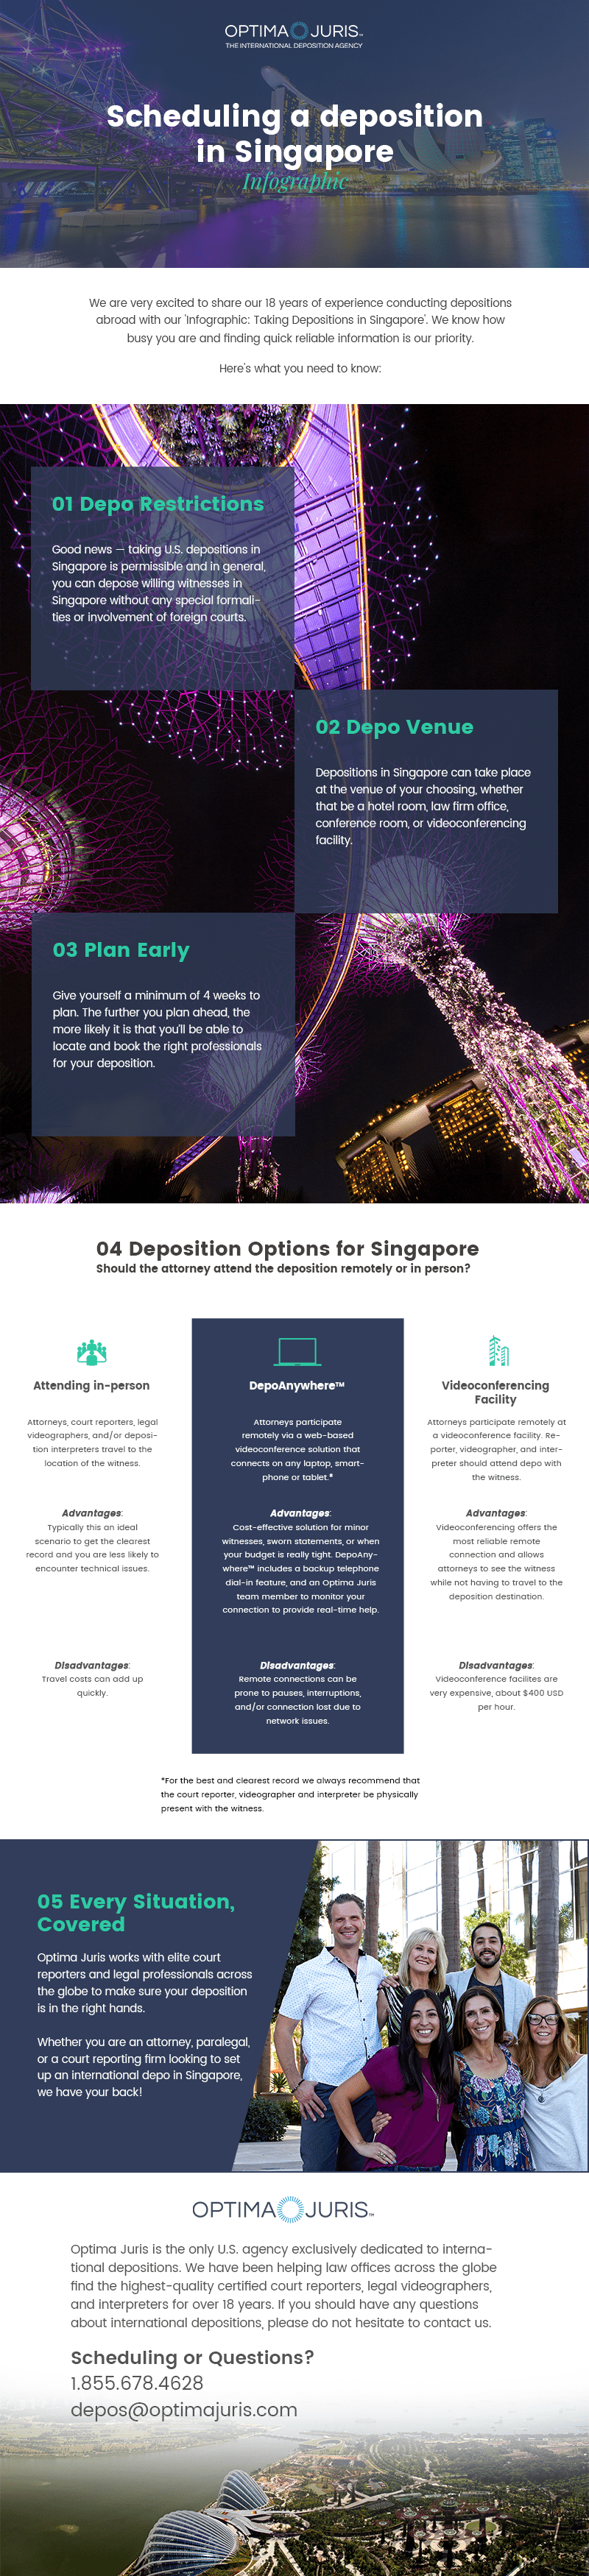 A Simple and Easy Guide to Setting Up a Deposition in Singapore (Infographic)